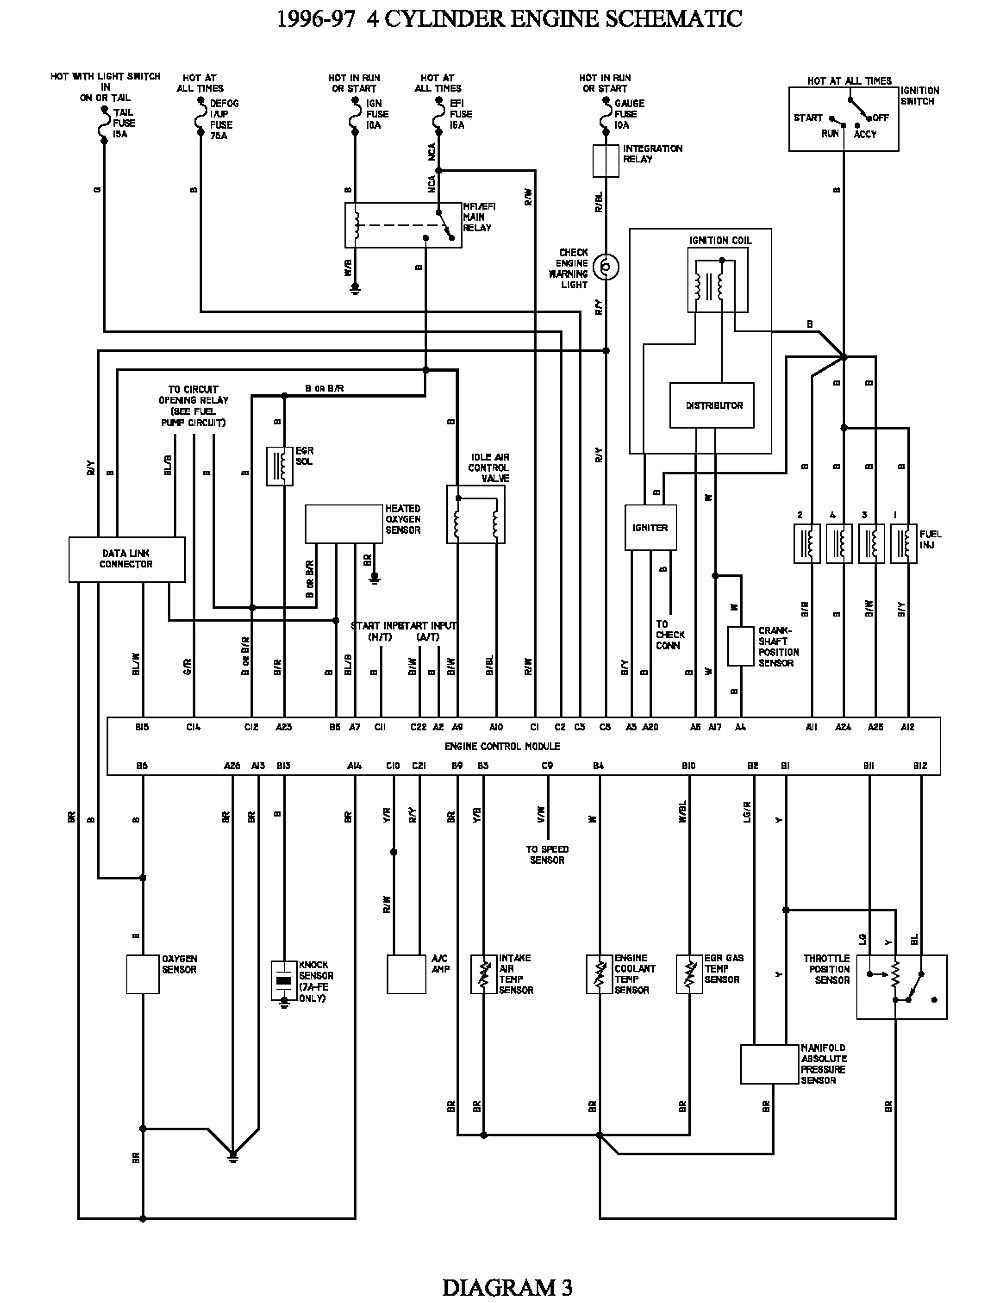 Diagram 1997 Toyota Corolla Stereo Wiring Diagram Full Version Hd Quality Wiring Diagram Diagramharshi Piandelvoglio It